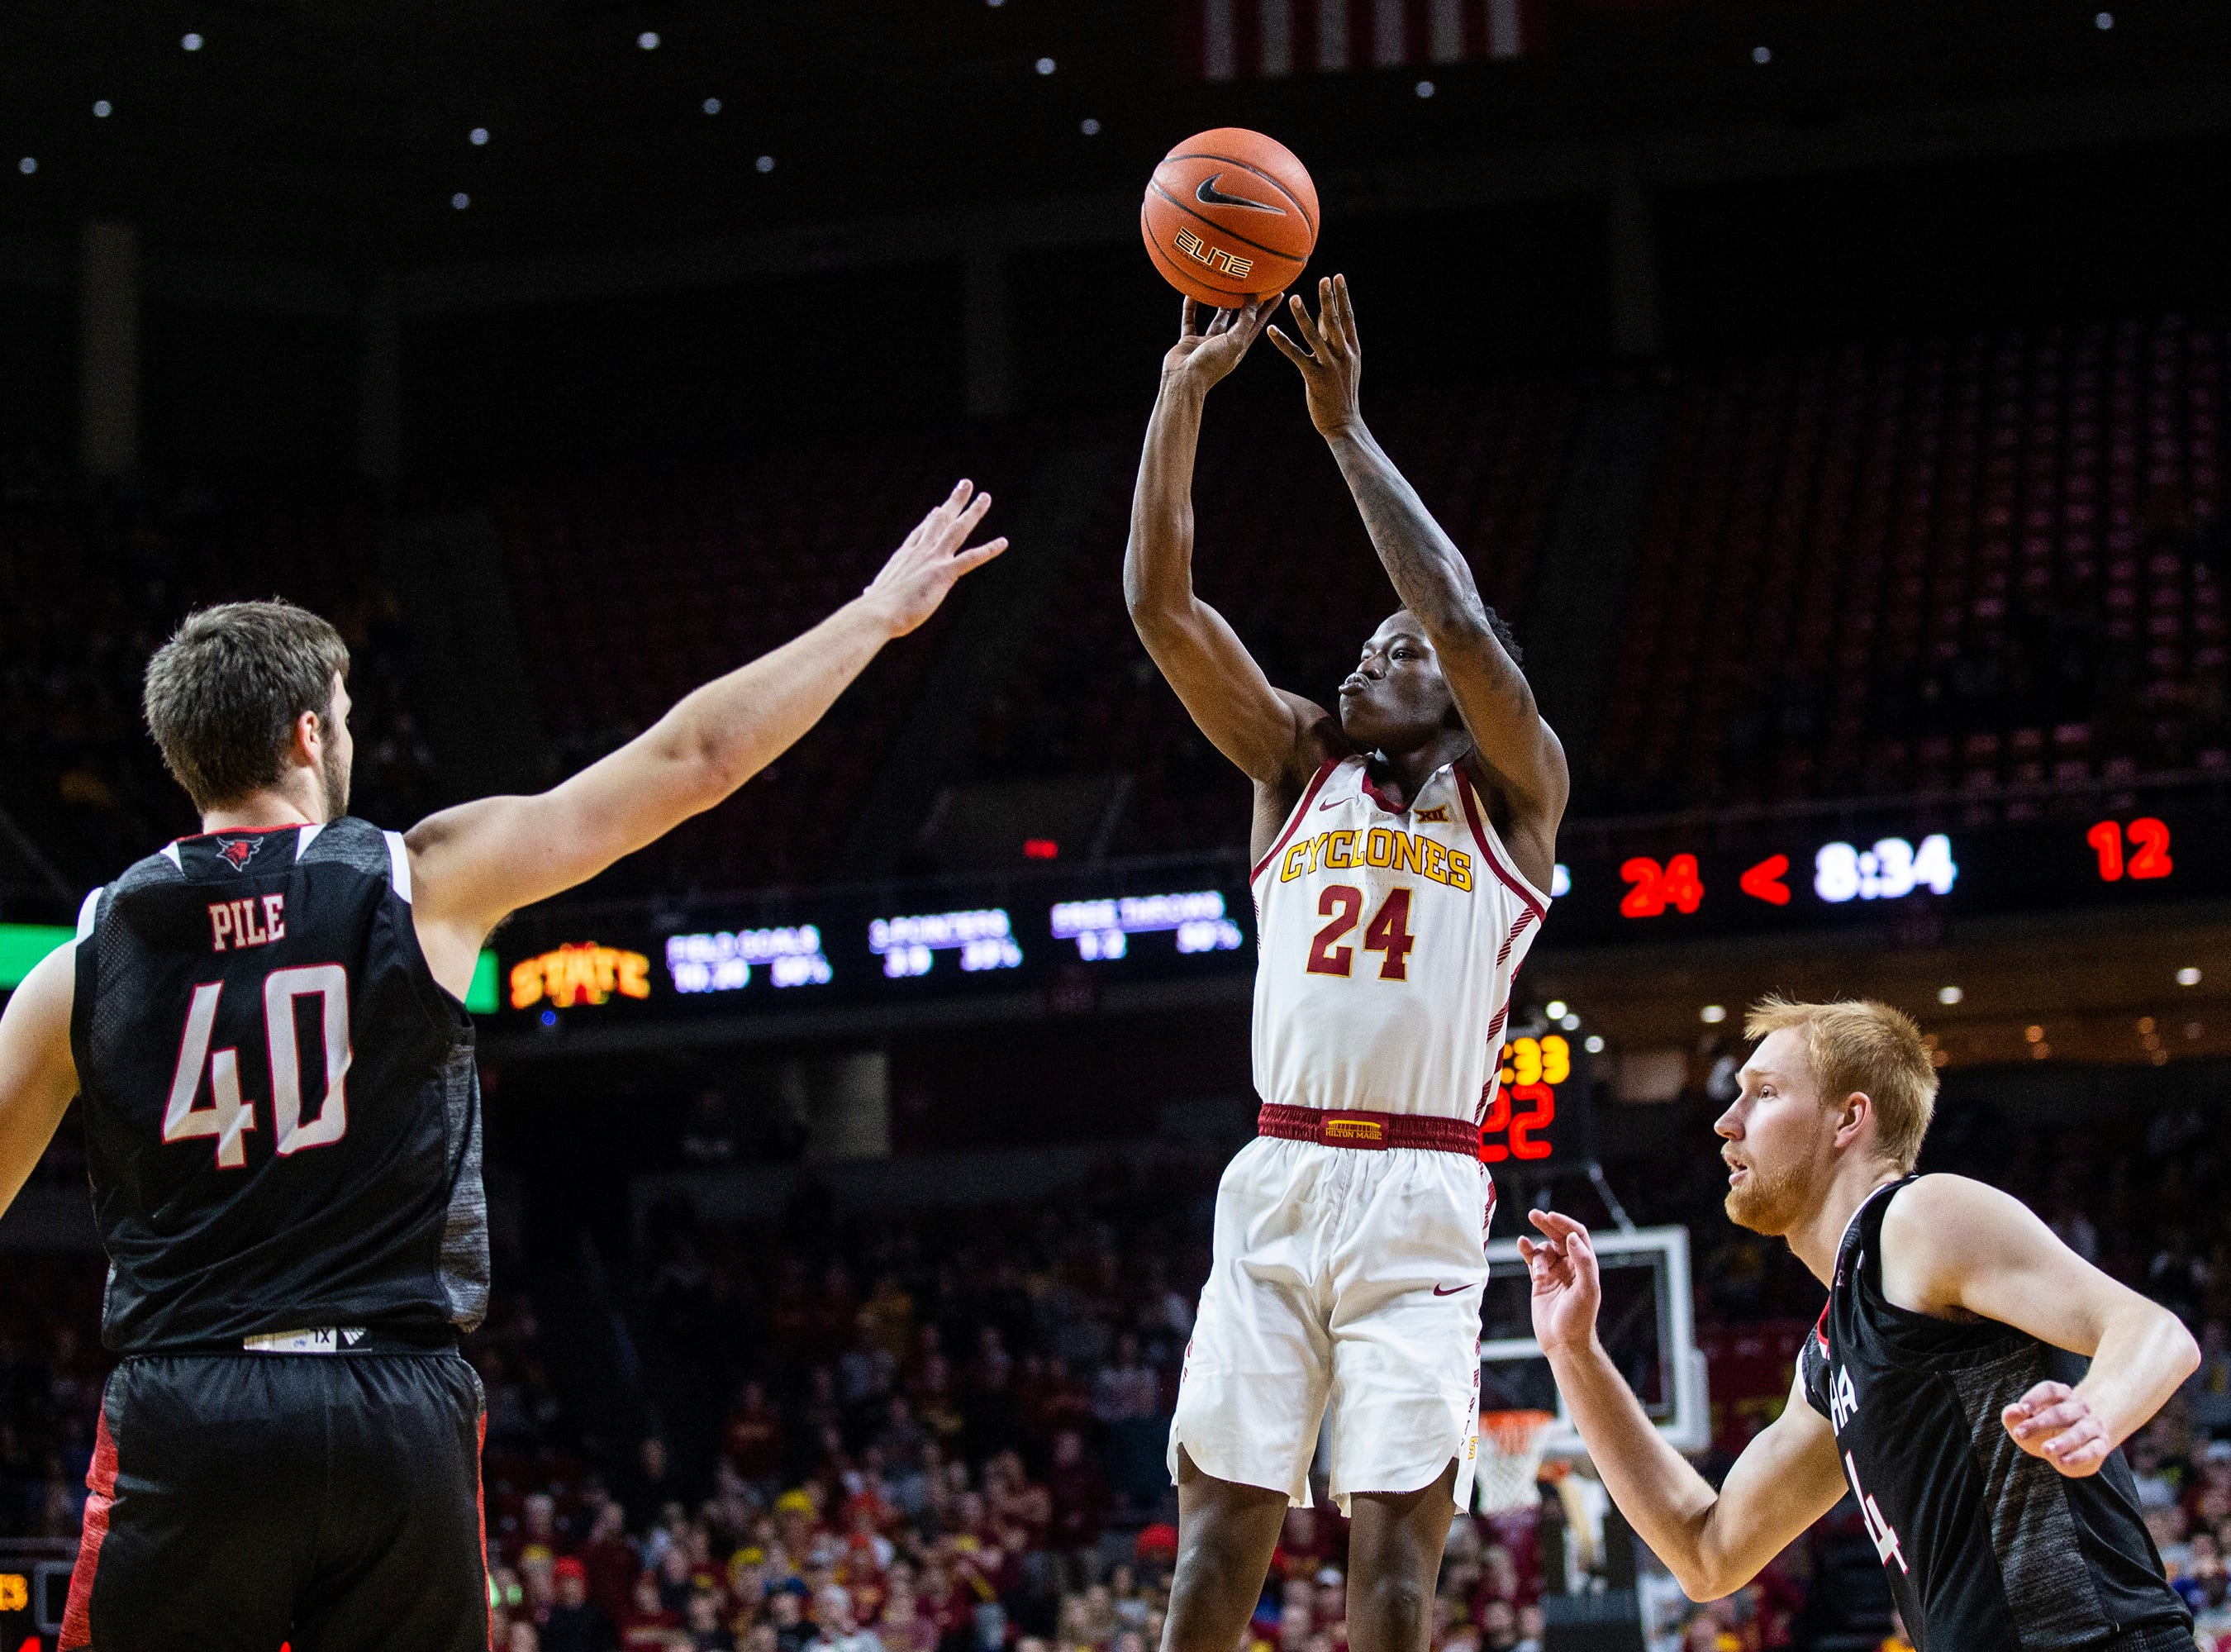 Iowa State's Terrence Lewis makes a jump-shot during the Iowa State men's basketball game against Omaha on Monday, Nov. 26, 2018, at Hilton Coliseum, in Ames.